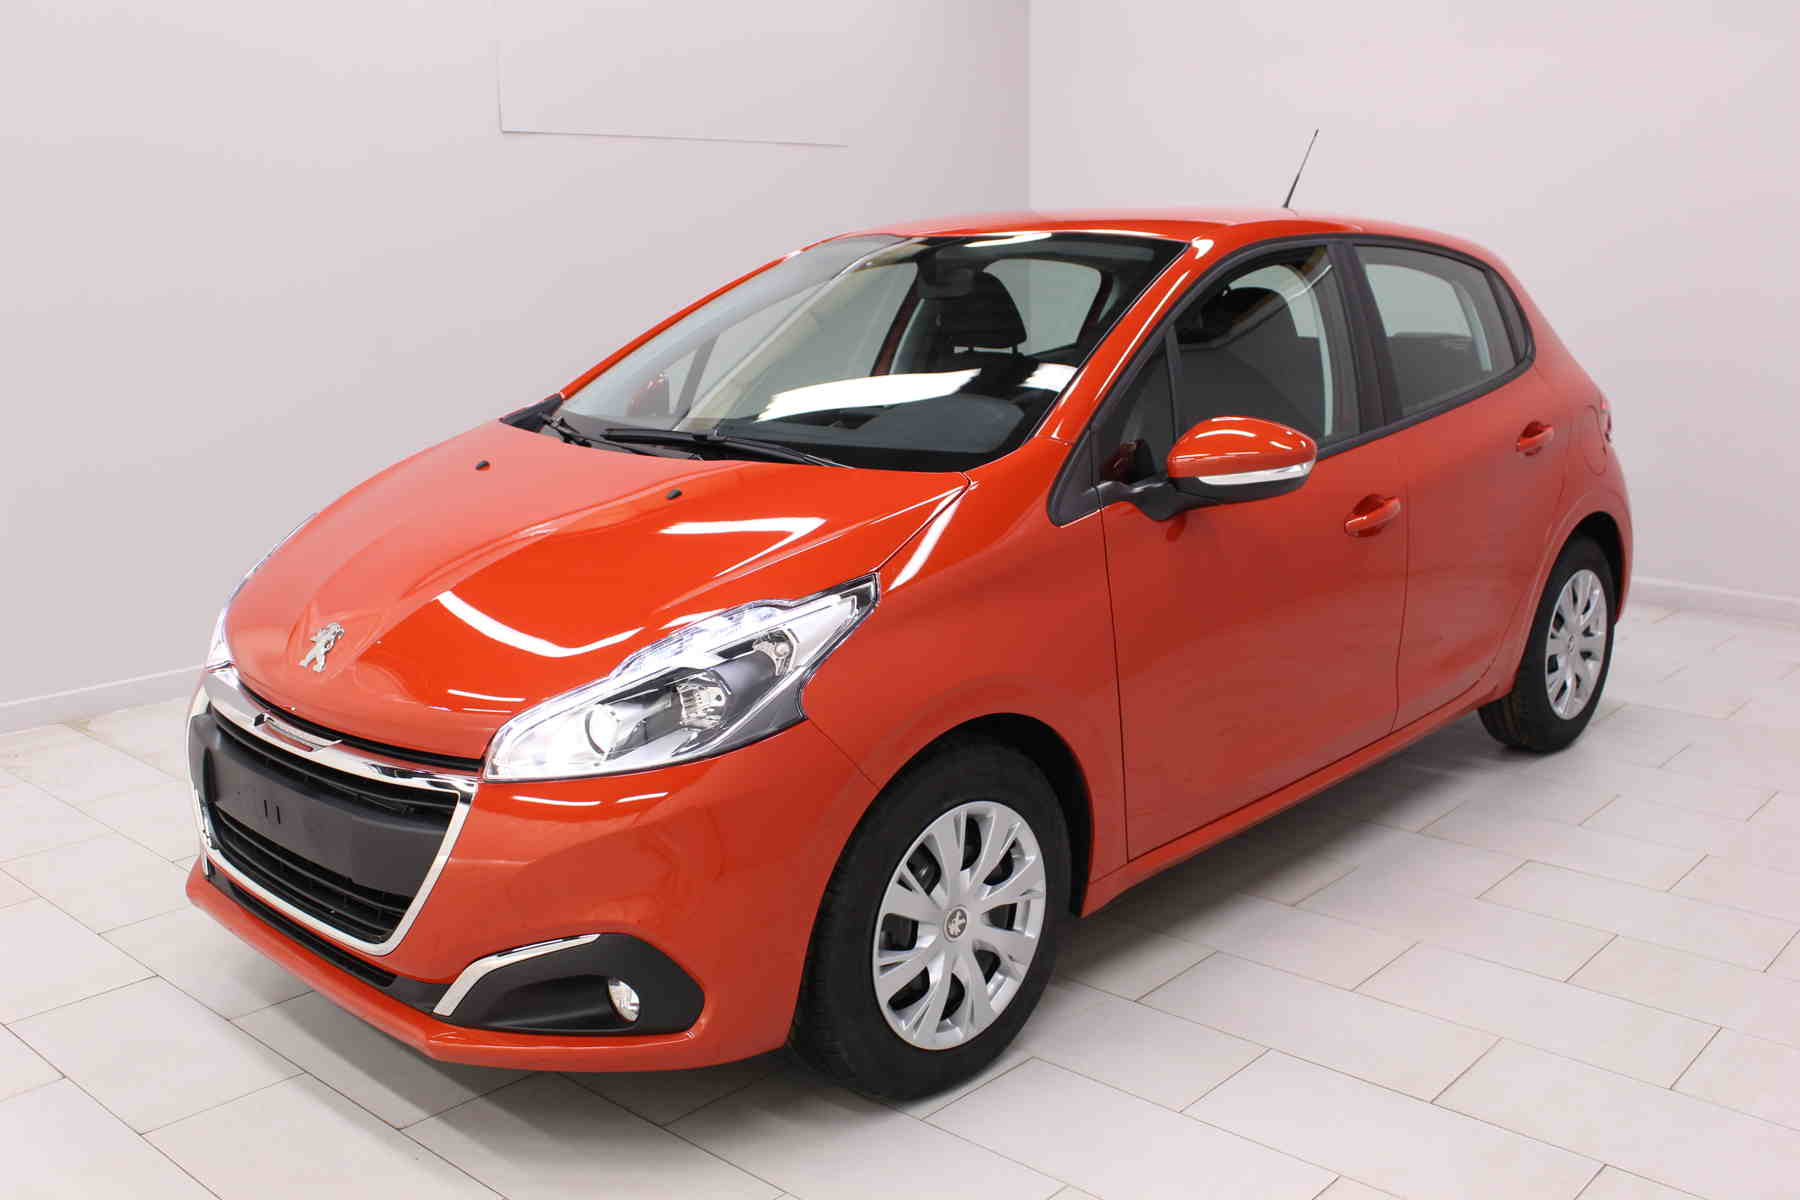 Acheter PEUGEOT 208 BlueHDi 100ch S&S BVM5 Active Orange Power + Mirror Screen + Climatisation automatique avec options chez un mandataire auto